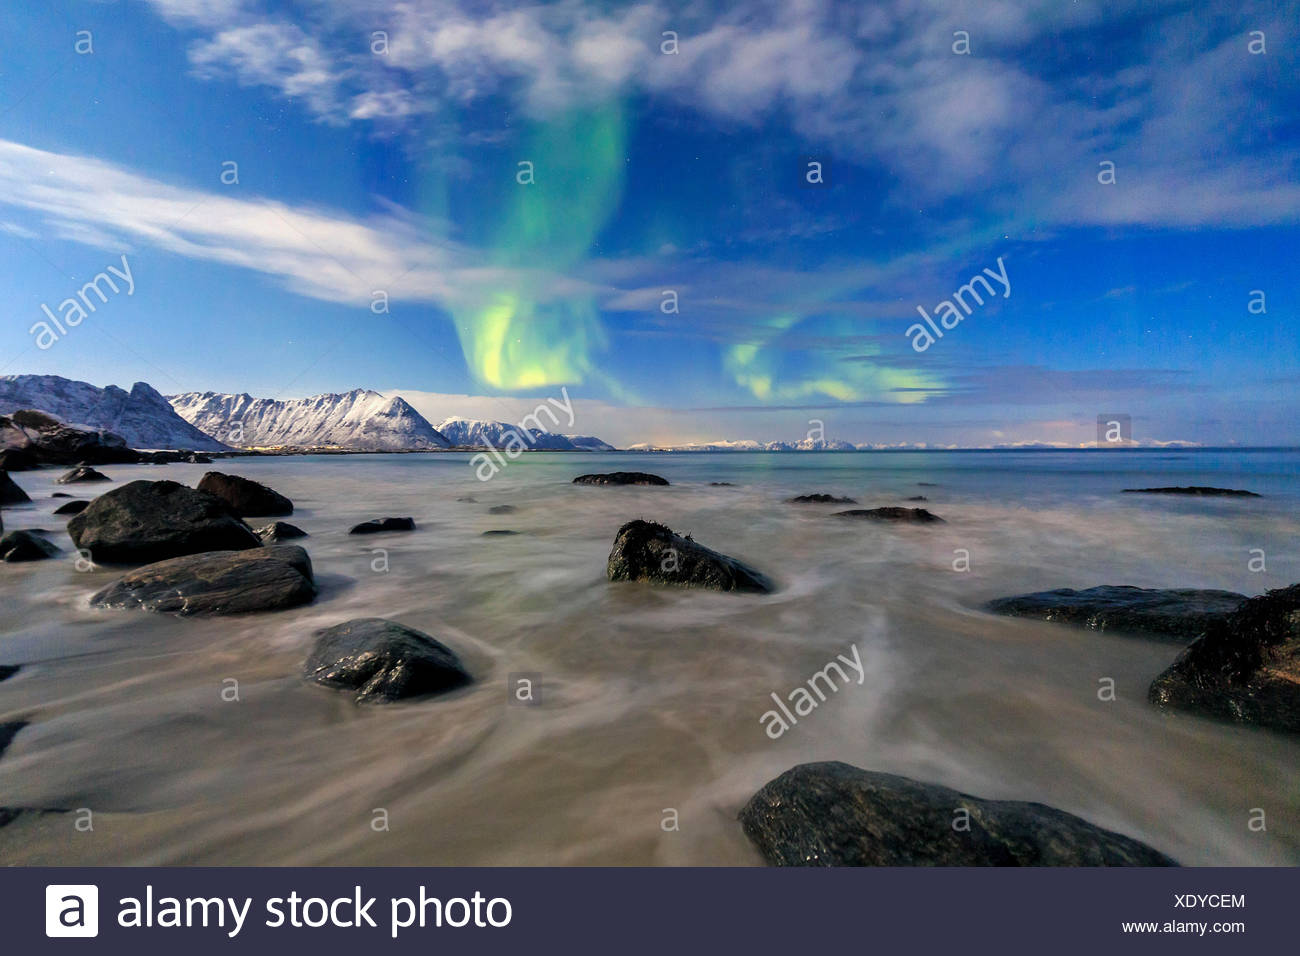 Northern Lights illuminate the landscape around Gymsøyand and the snowy peaks. Lofoten Islands Northern Norway Europe - Stock Image